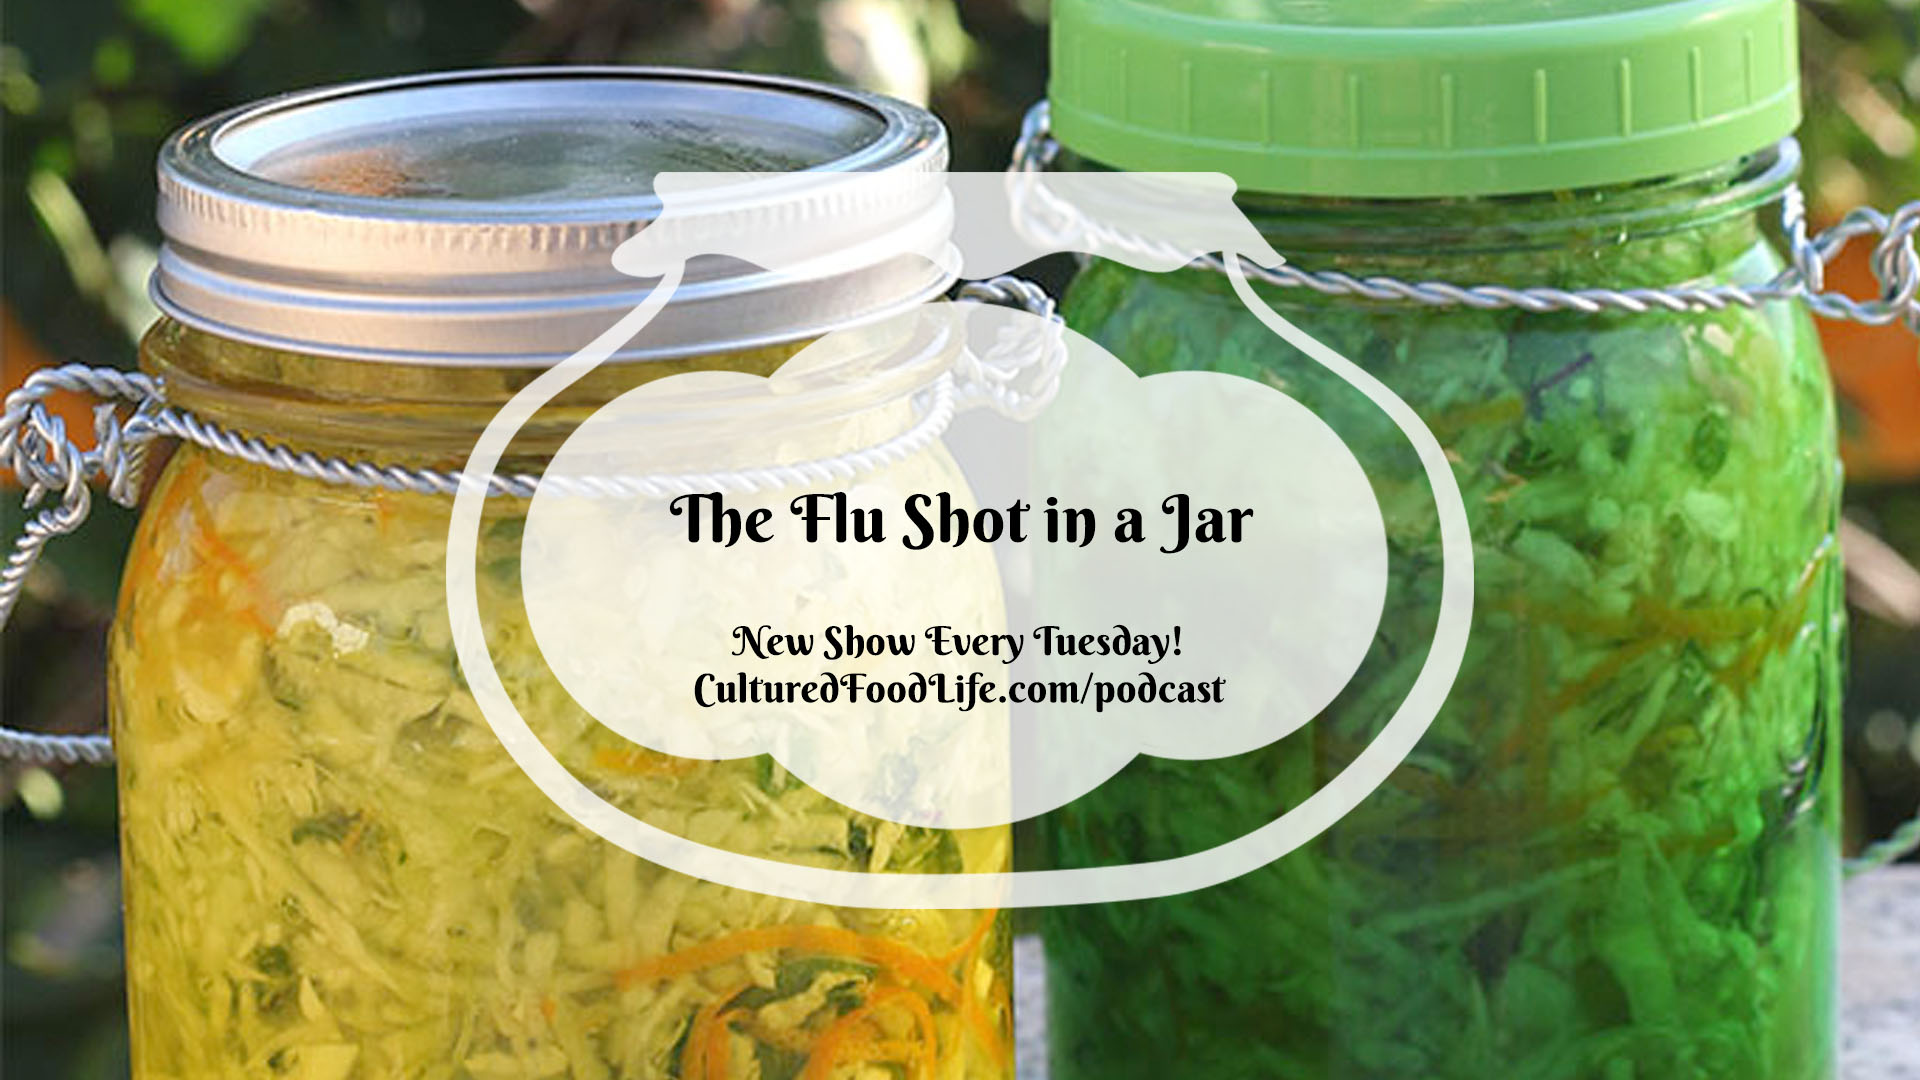 The Flu Shot in a Jar